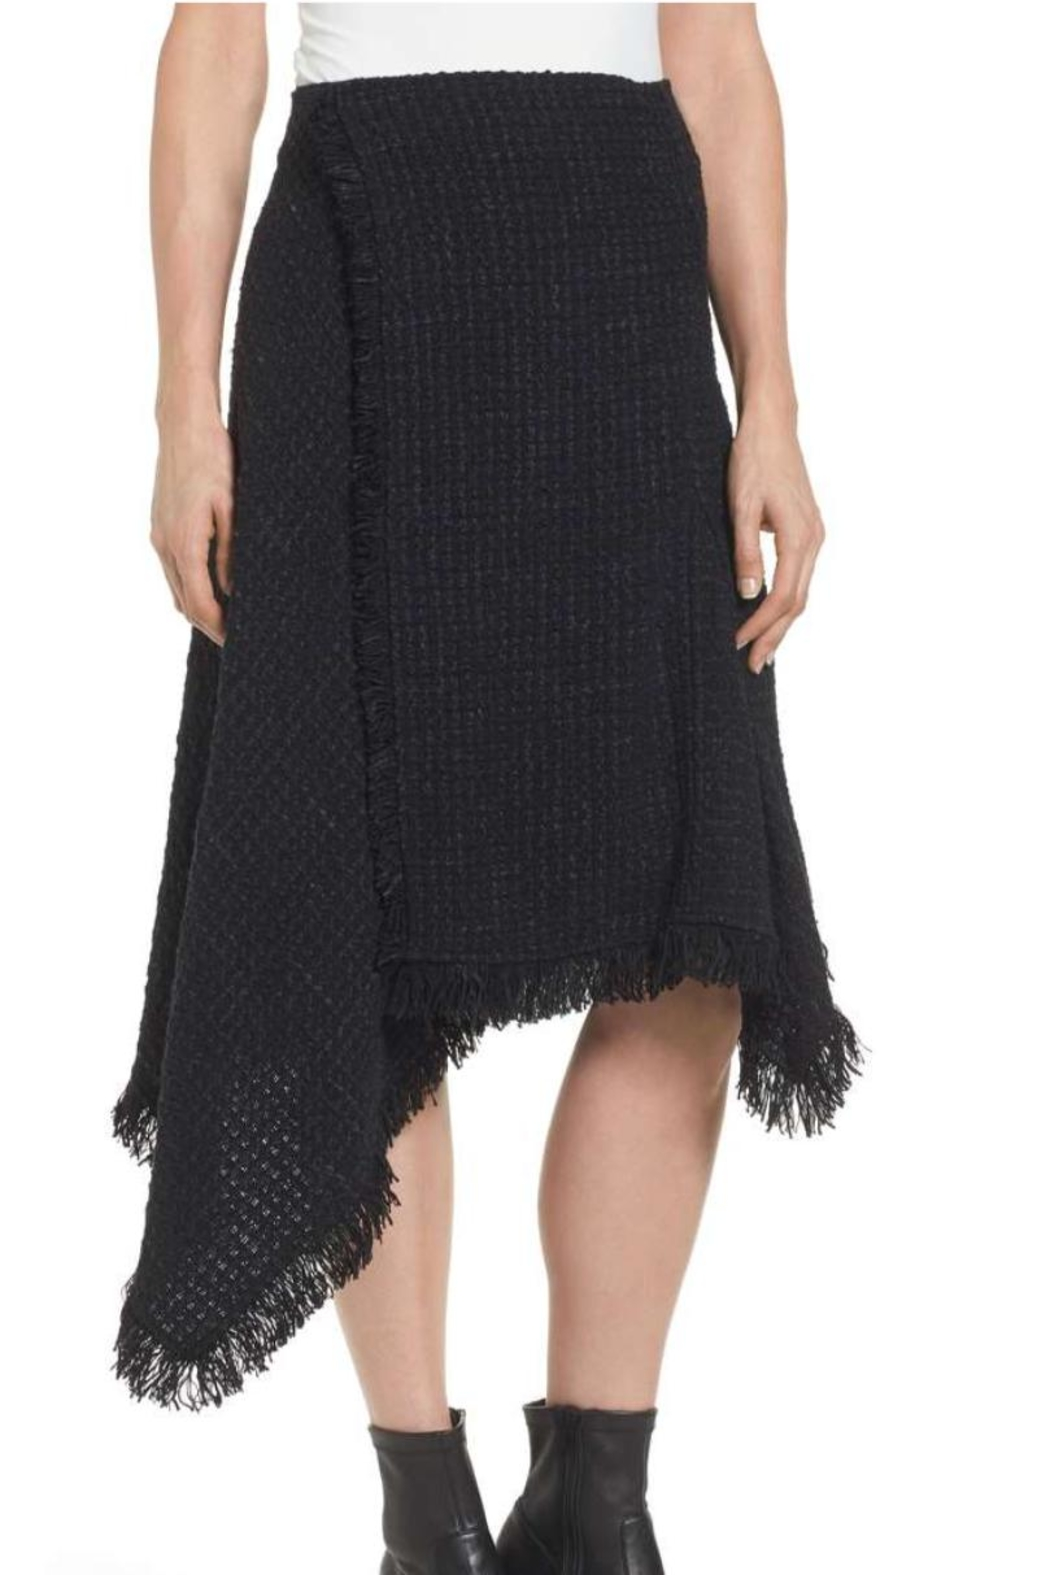 Nic + Zoe Majestic Tweed Skirt - Main Image